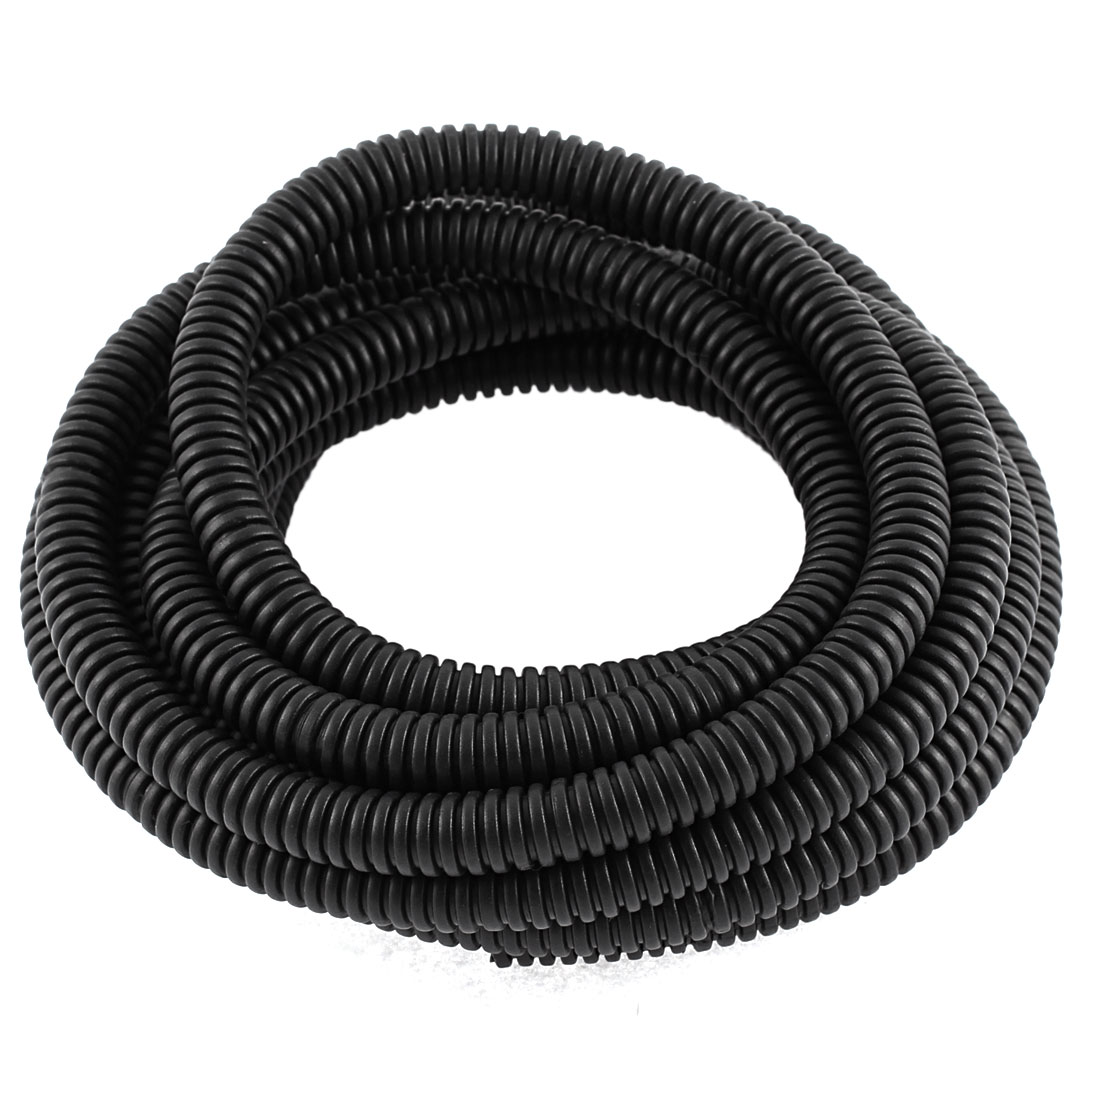 Corrugated Shaped Pipe Bellows Tube Hose Black3 Meters Length 10 x 8mm Diameter